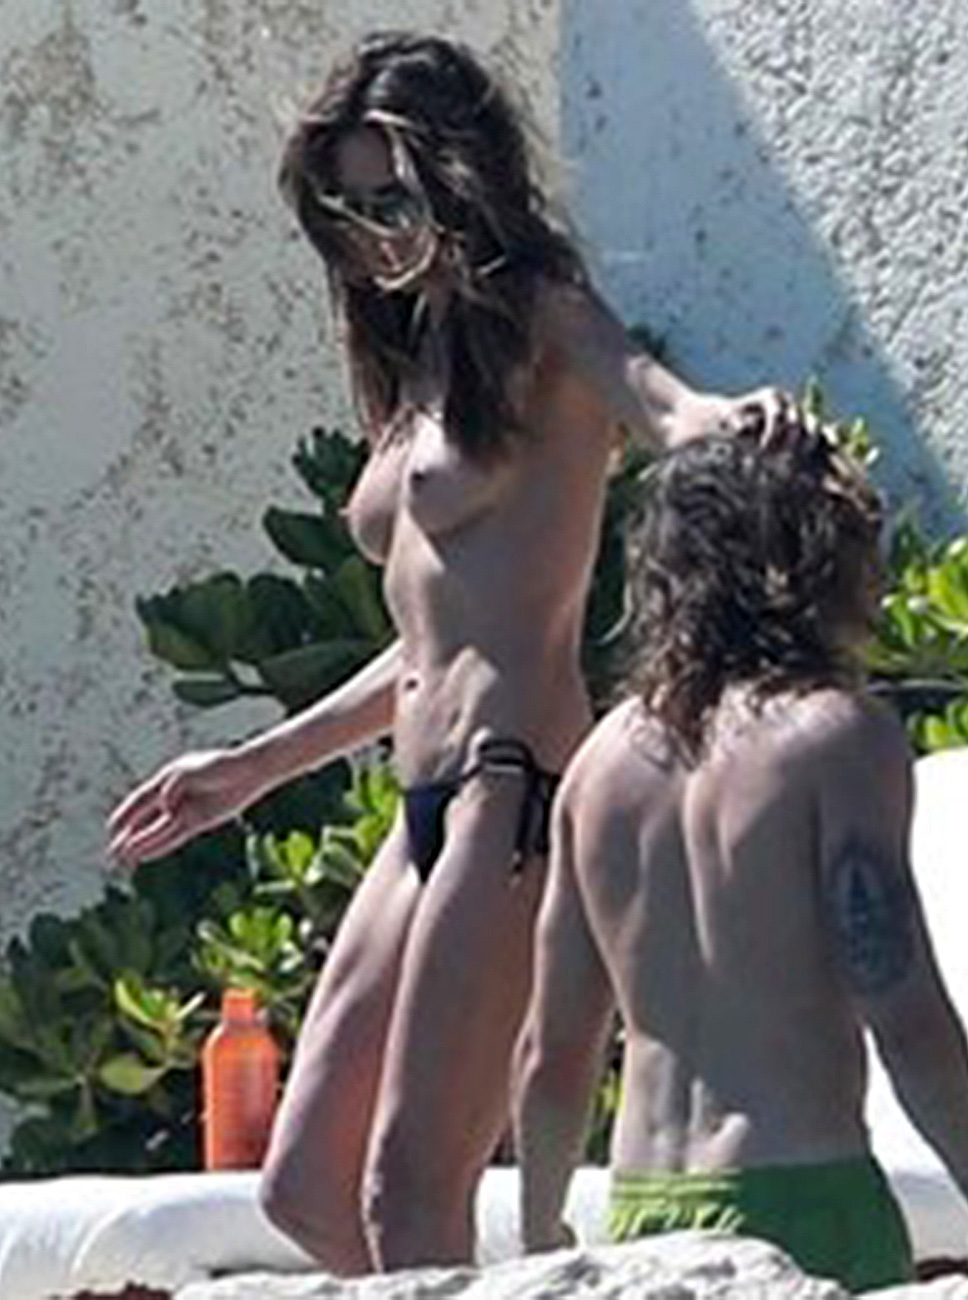 Heidi Klum Topless On Swimming Pool Scandalpost